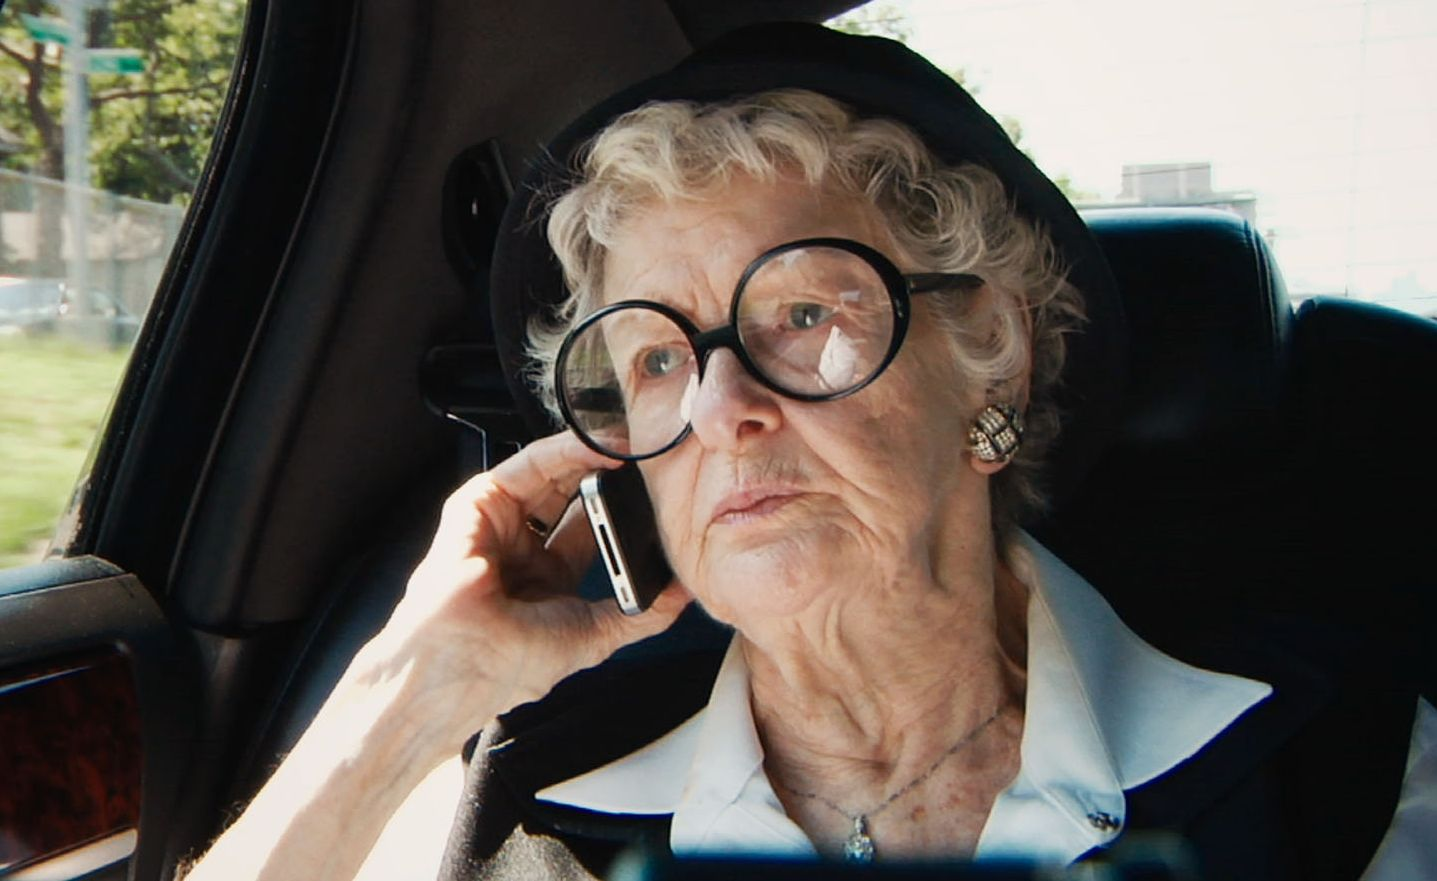 Elaine Stritch on the phone with her big glasses